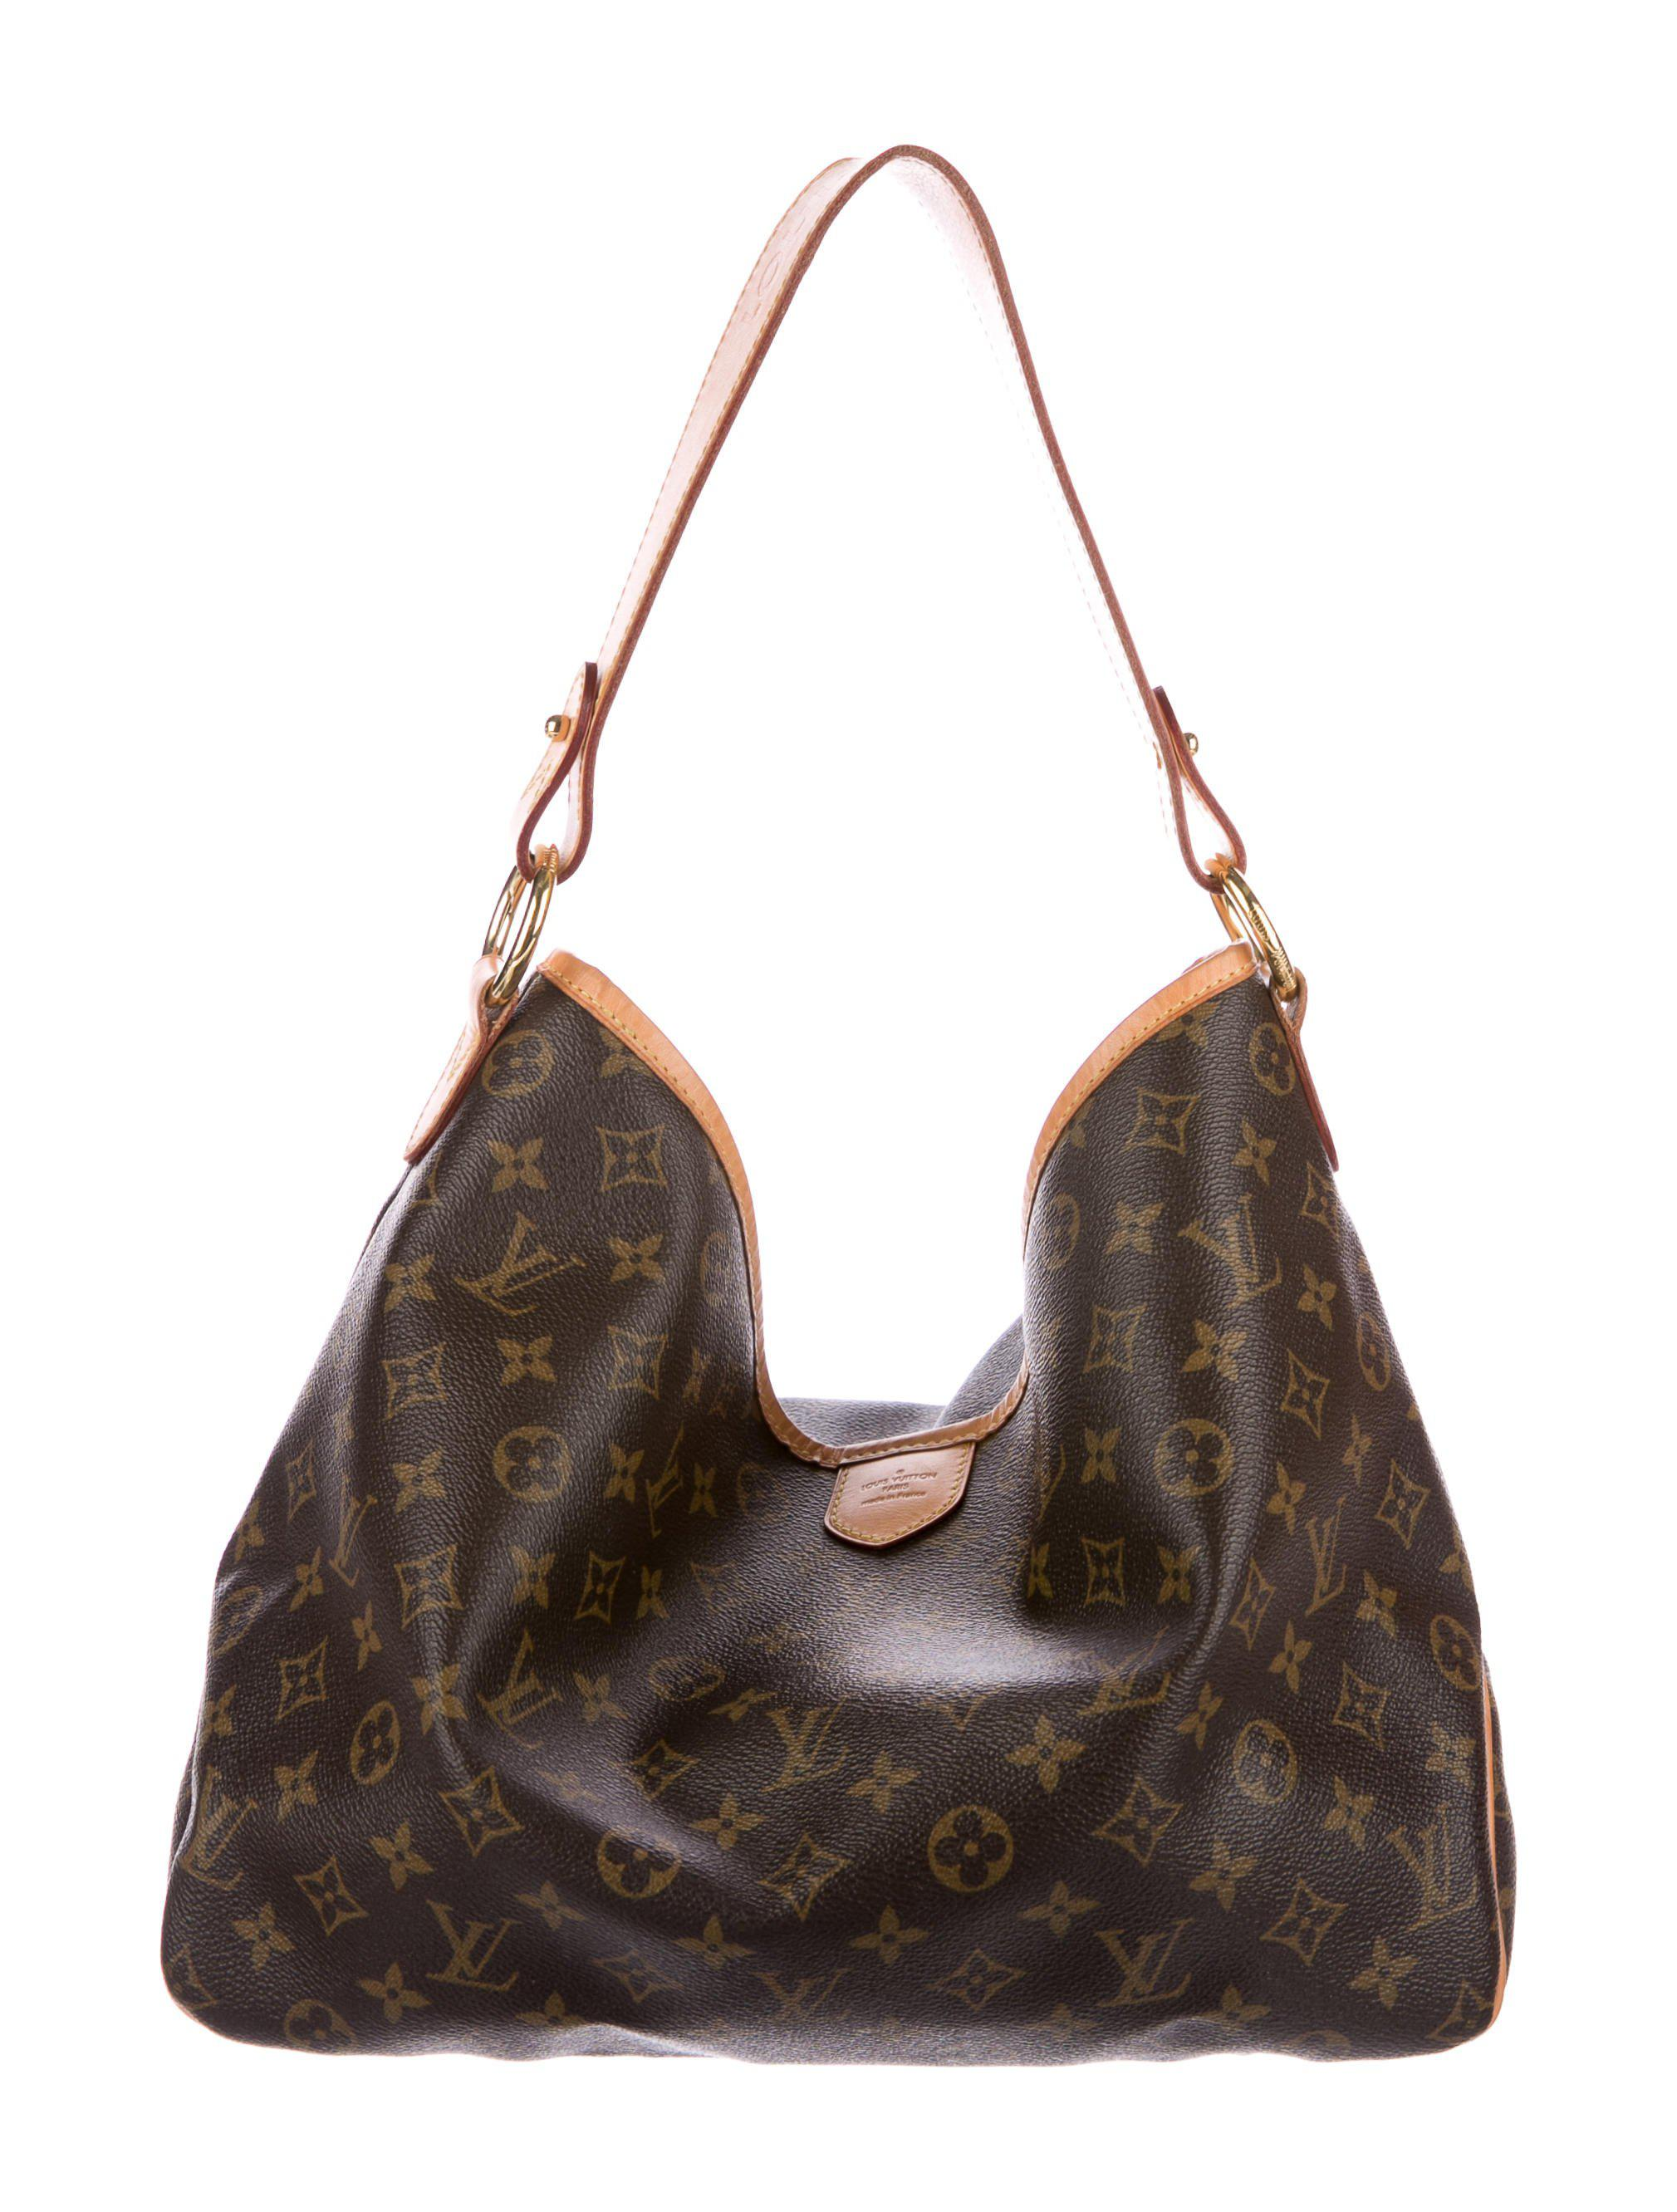 7d8a91bc14e Lyst - Louis Vuitton Monogram Delightful Pm Brown in Natural